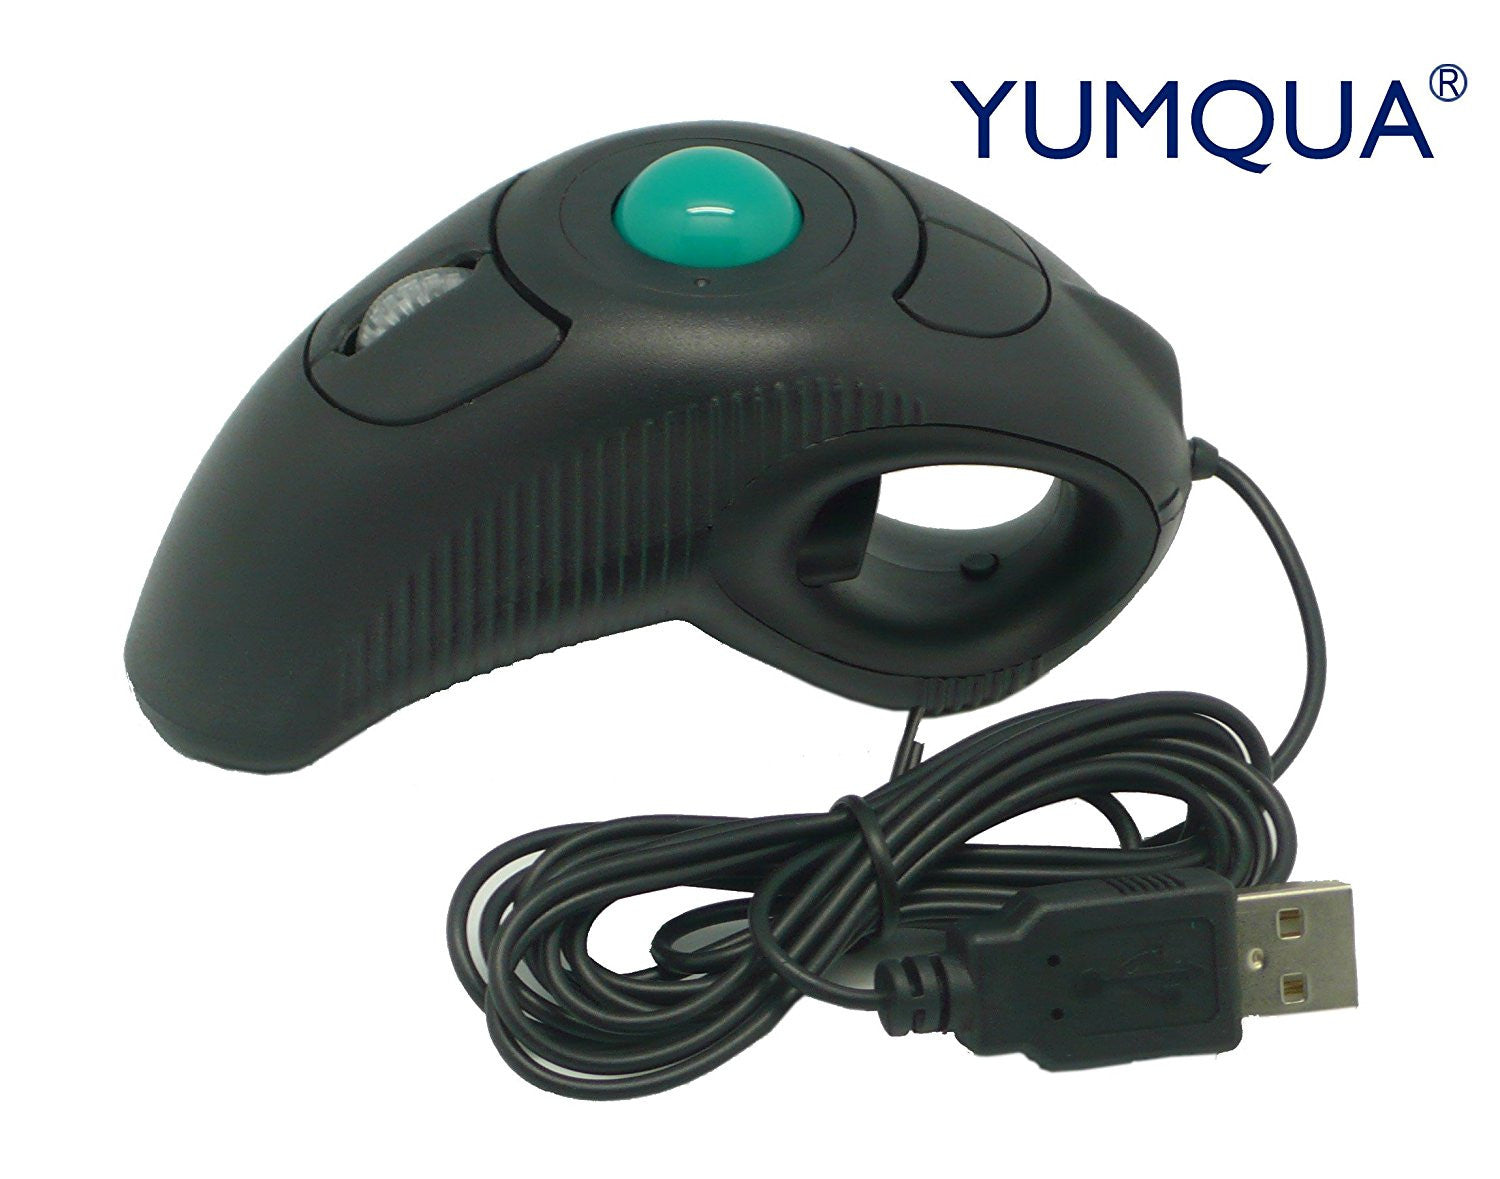 yumqua y 10 portable finger handheld 4d wired usb trackball mouse for